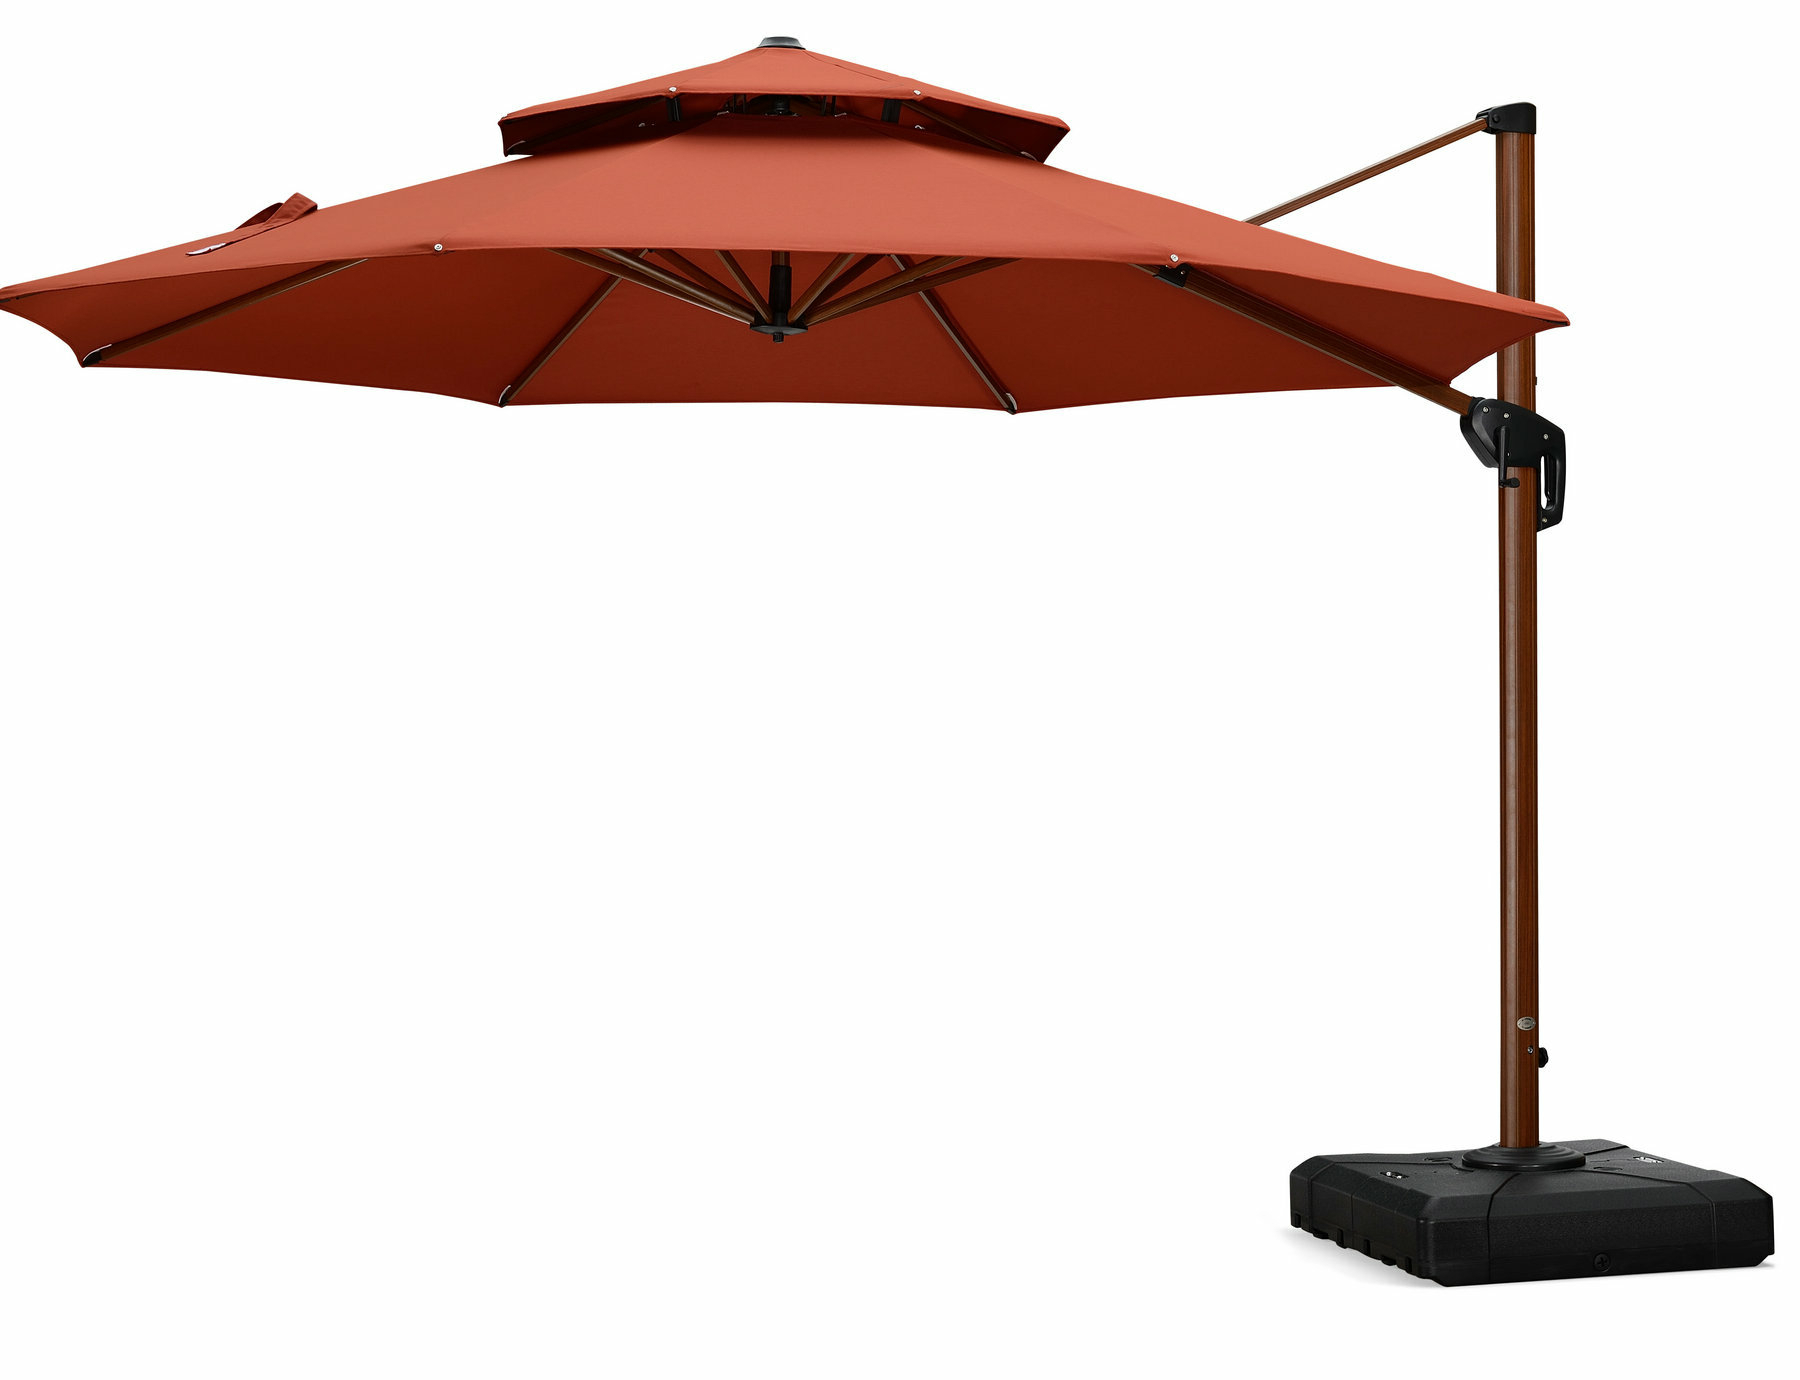 Popular Vogt 11' Cantilever Umbrella With Mablethorpe Cantilever Umbrellas (View 20 of 20)